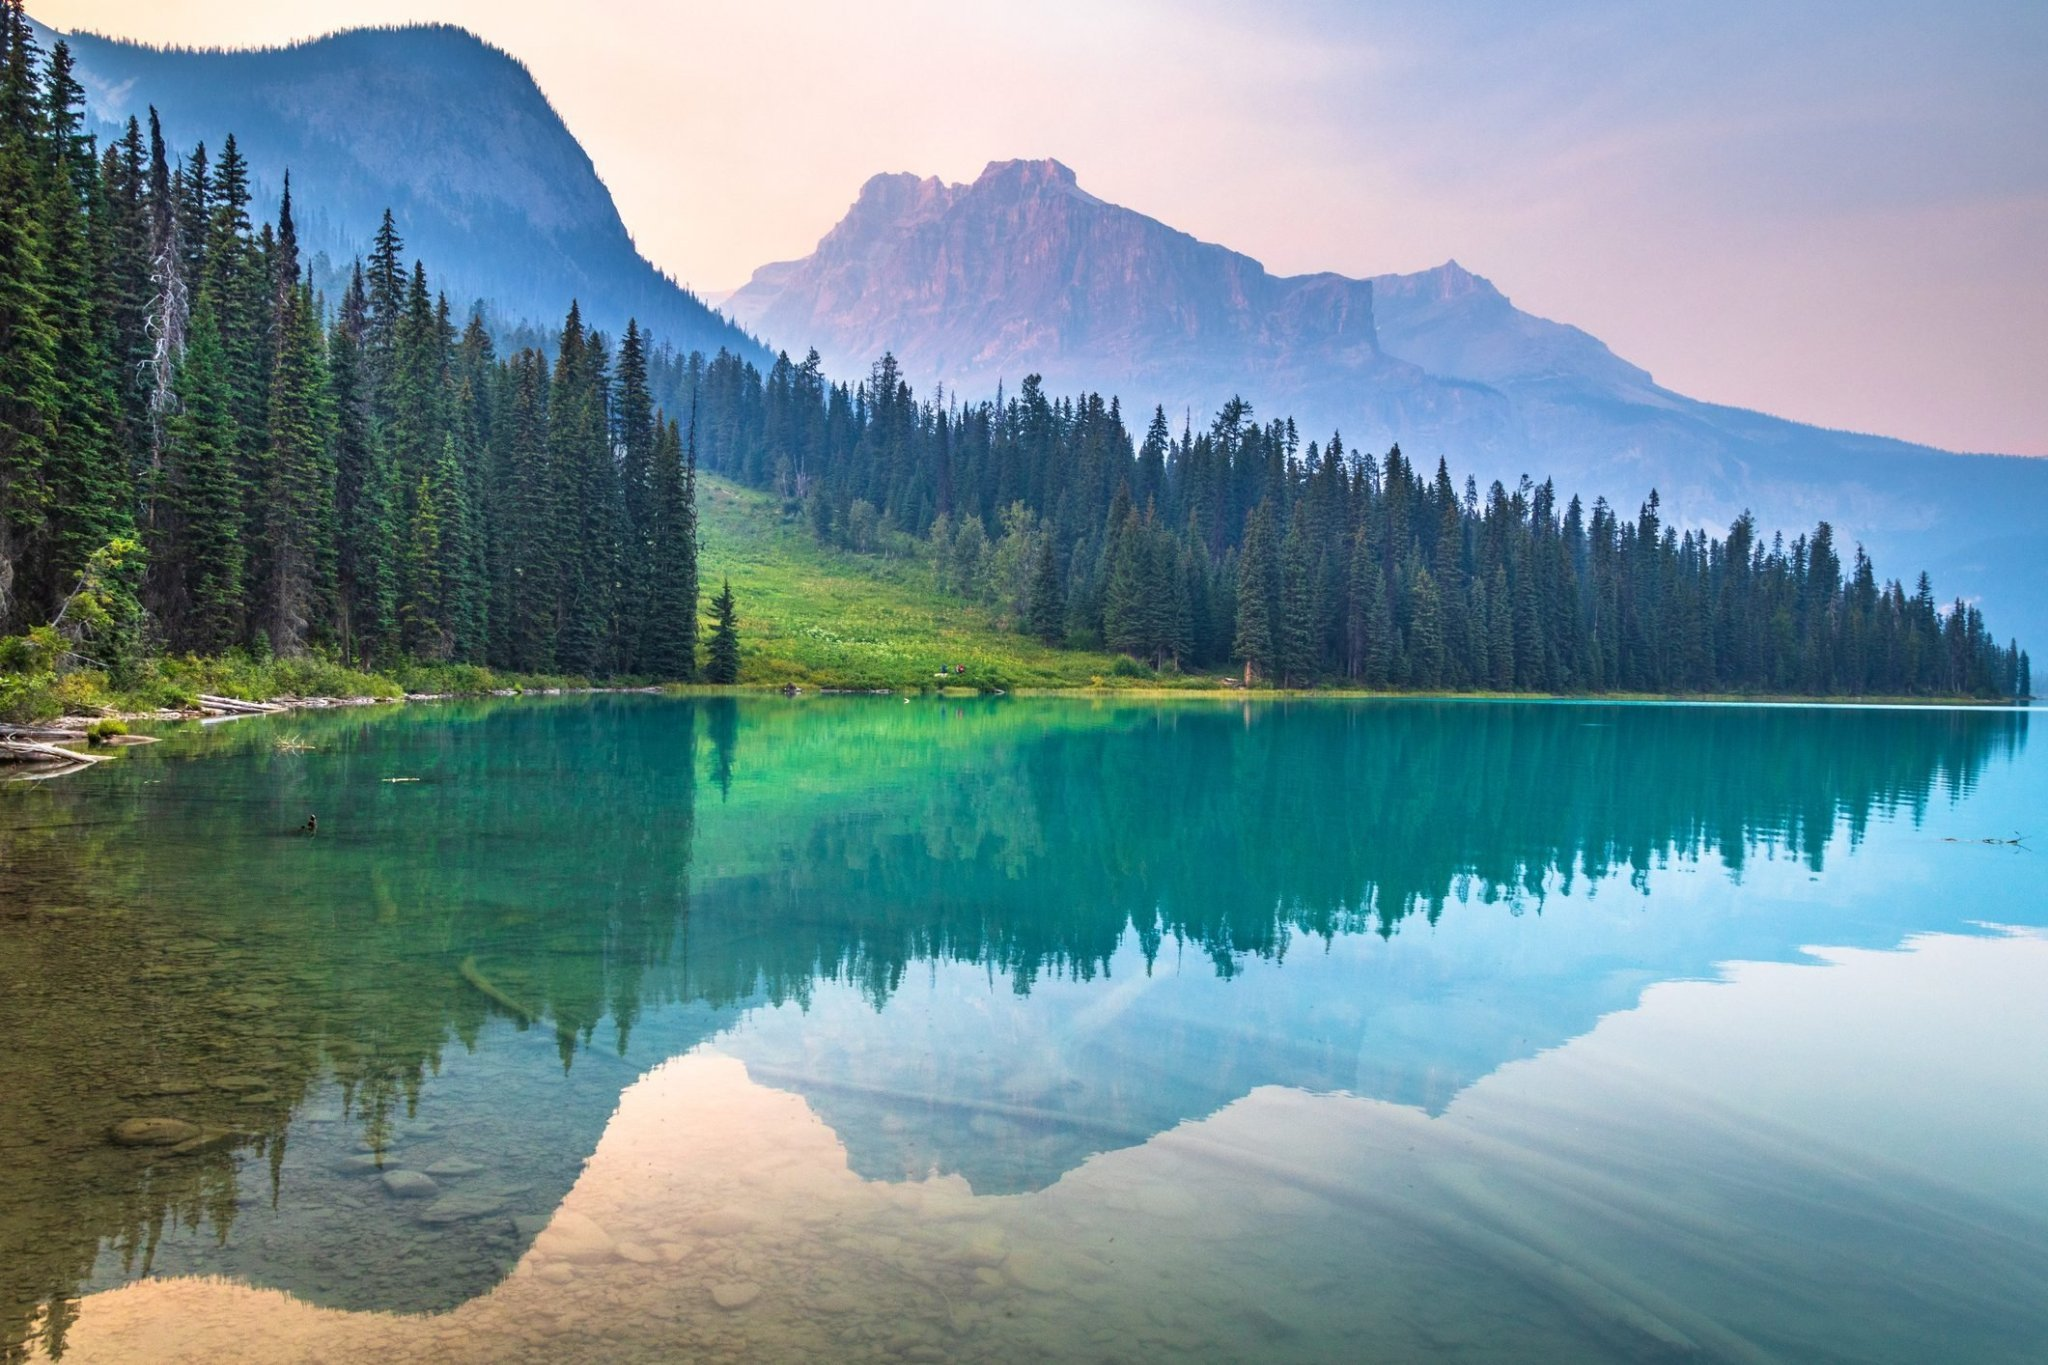 Clearest Lakes In The World & National Parks That Are Totally Photography-Worthy